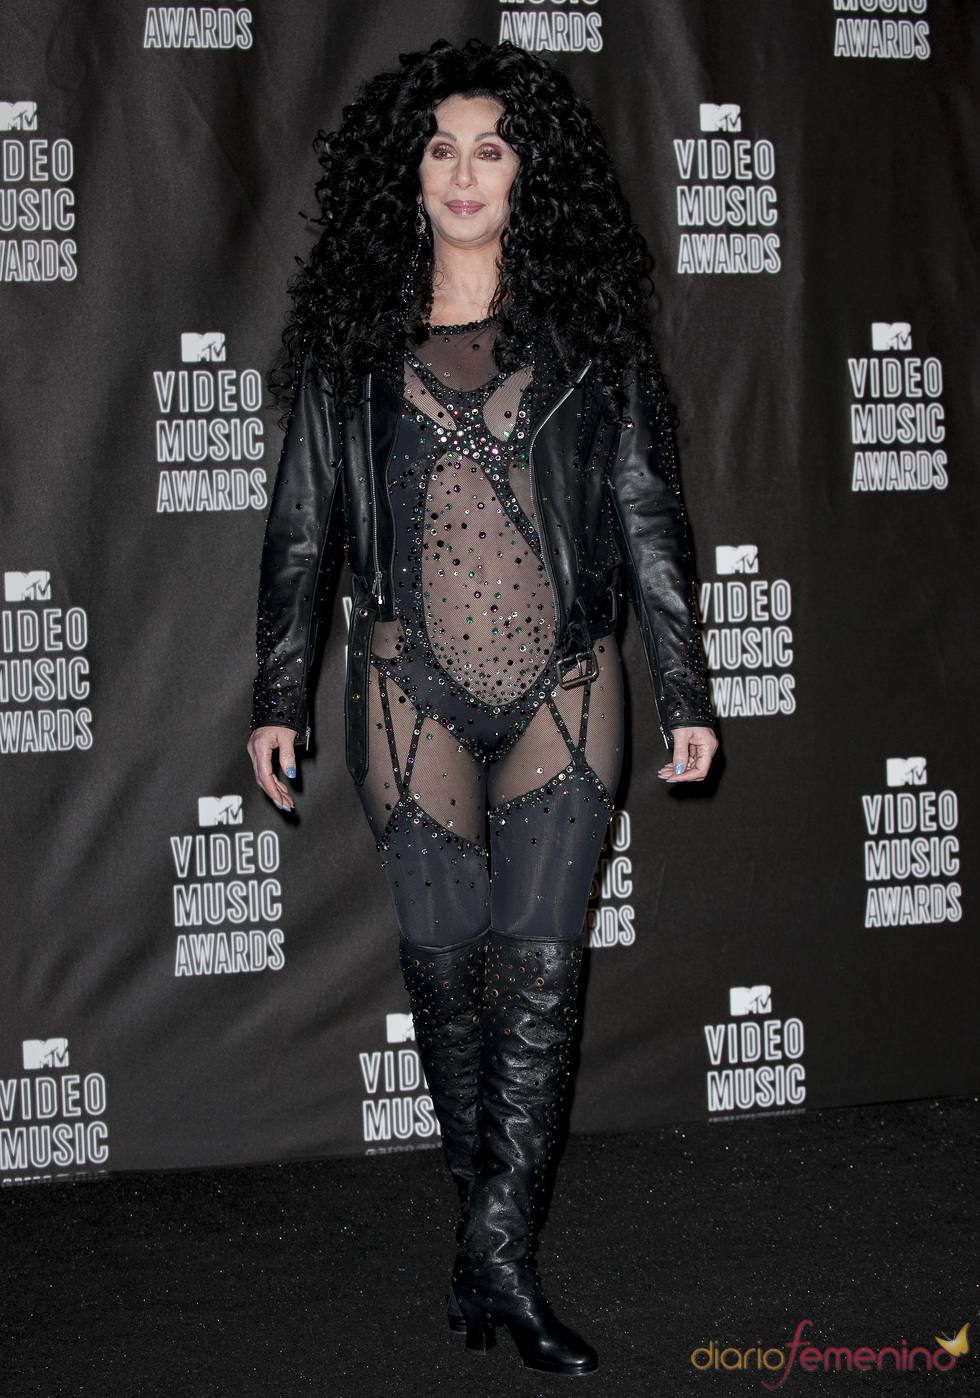 Una atrevida Cher en los MTV Video Music Awards 2010